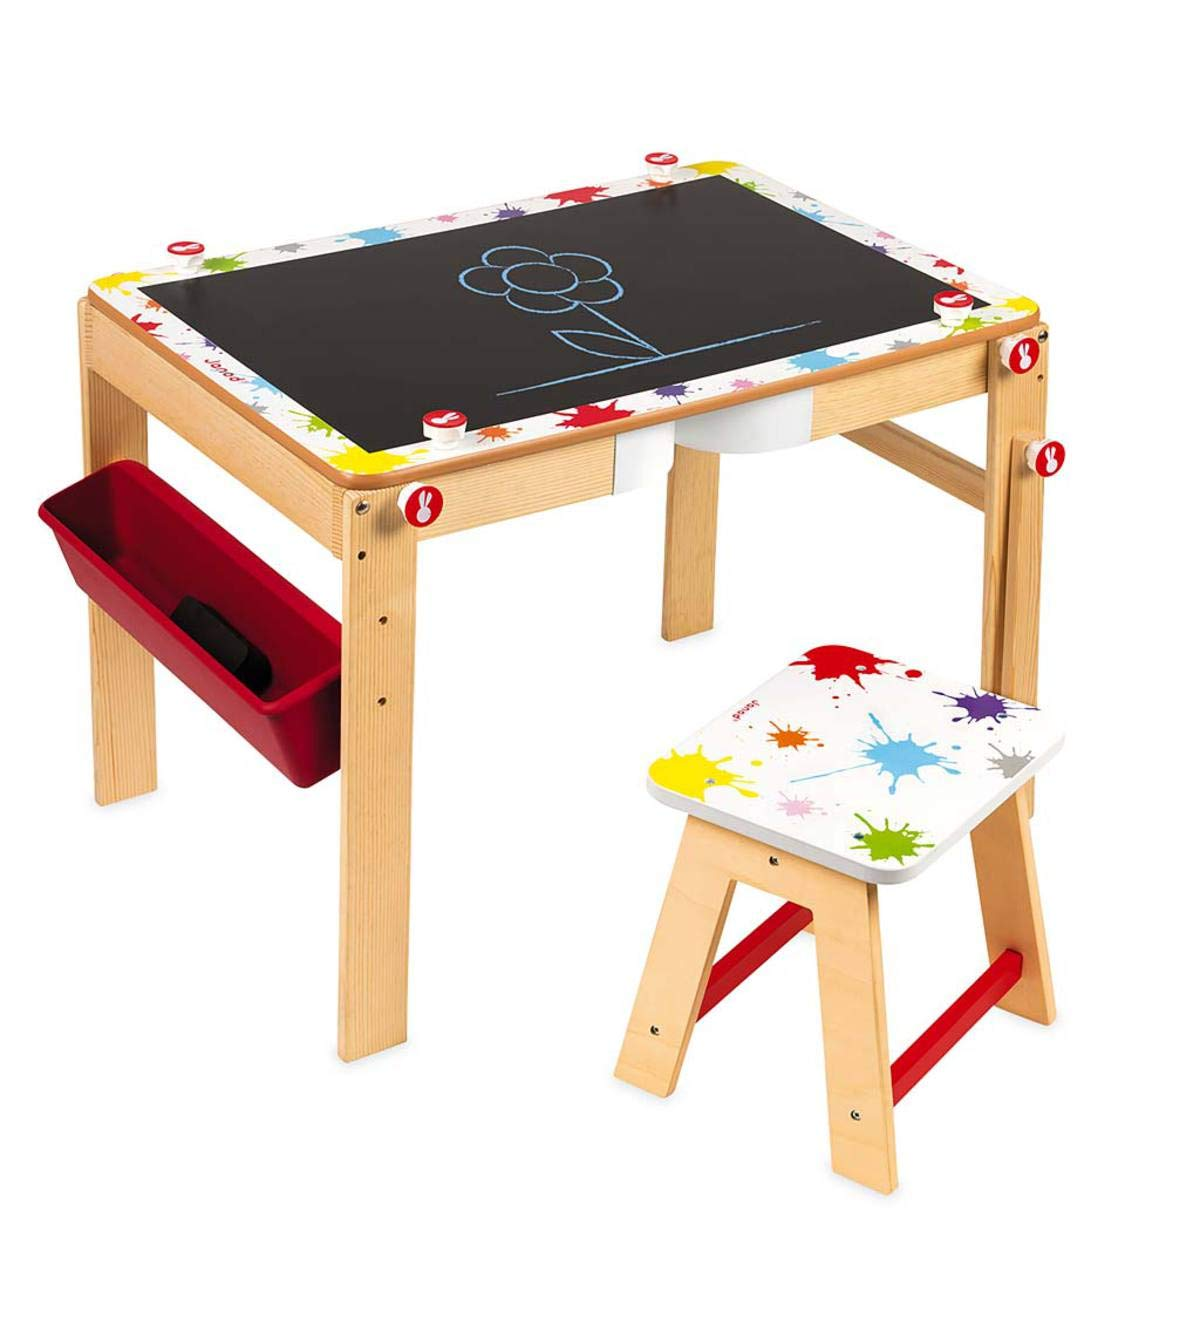 2-in-1 Convertible Art Station for Kids - Desk and Stool Special - Magnetic Whiteboard and Black Chalkboard - Includes Marker, Chalk, and Eraser, Storage Tray - 30 L x 20.5 W x 20.25 H by Magic Cabin